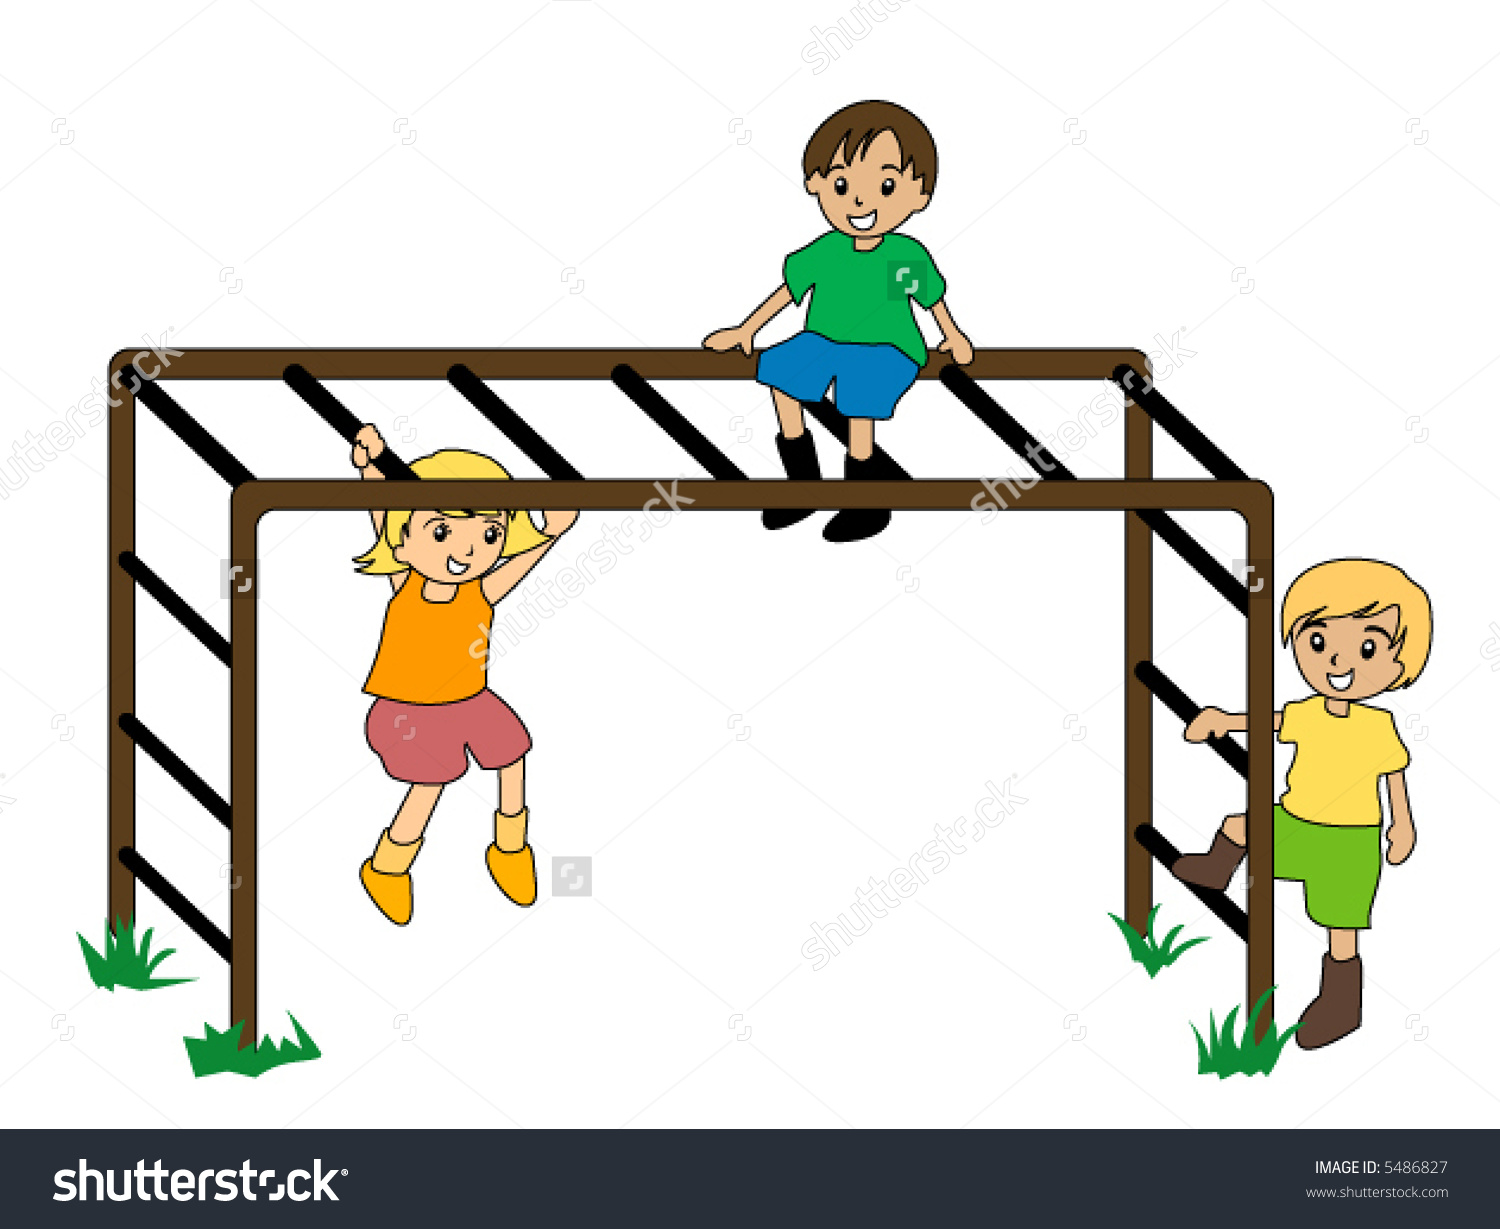 1500x1229 28+ Collection of Monkey Bars Clipart Black And White High